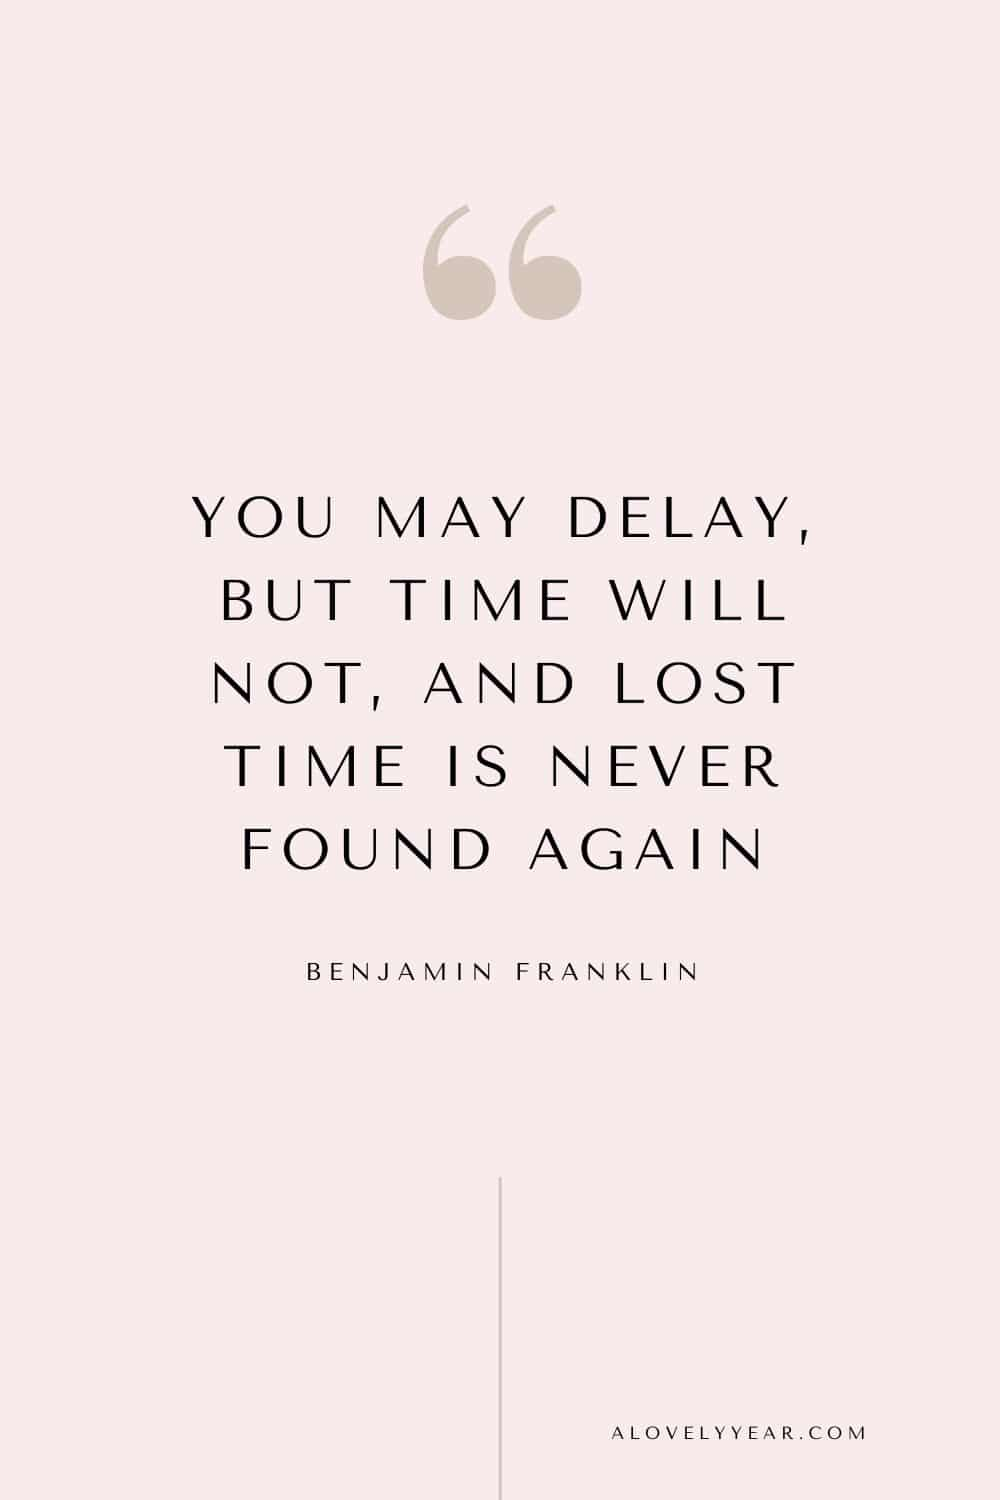 Get things done quote - You may delay, but time will not, and lost time is never found again. — Benjamin Franklin